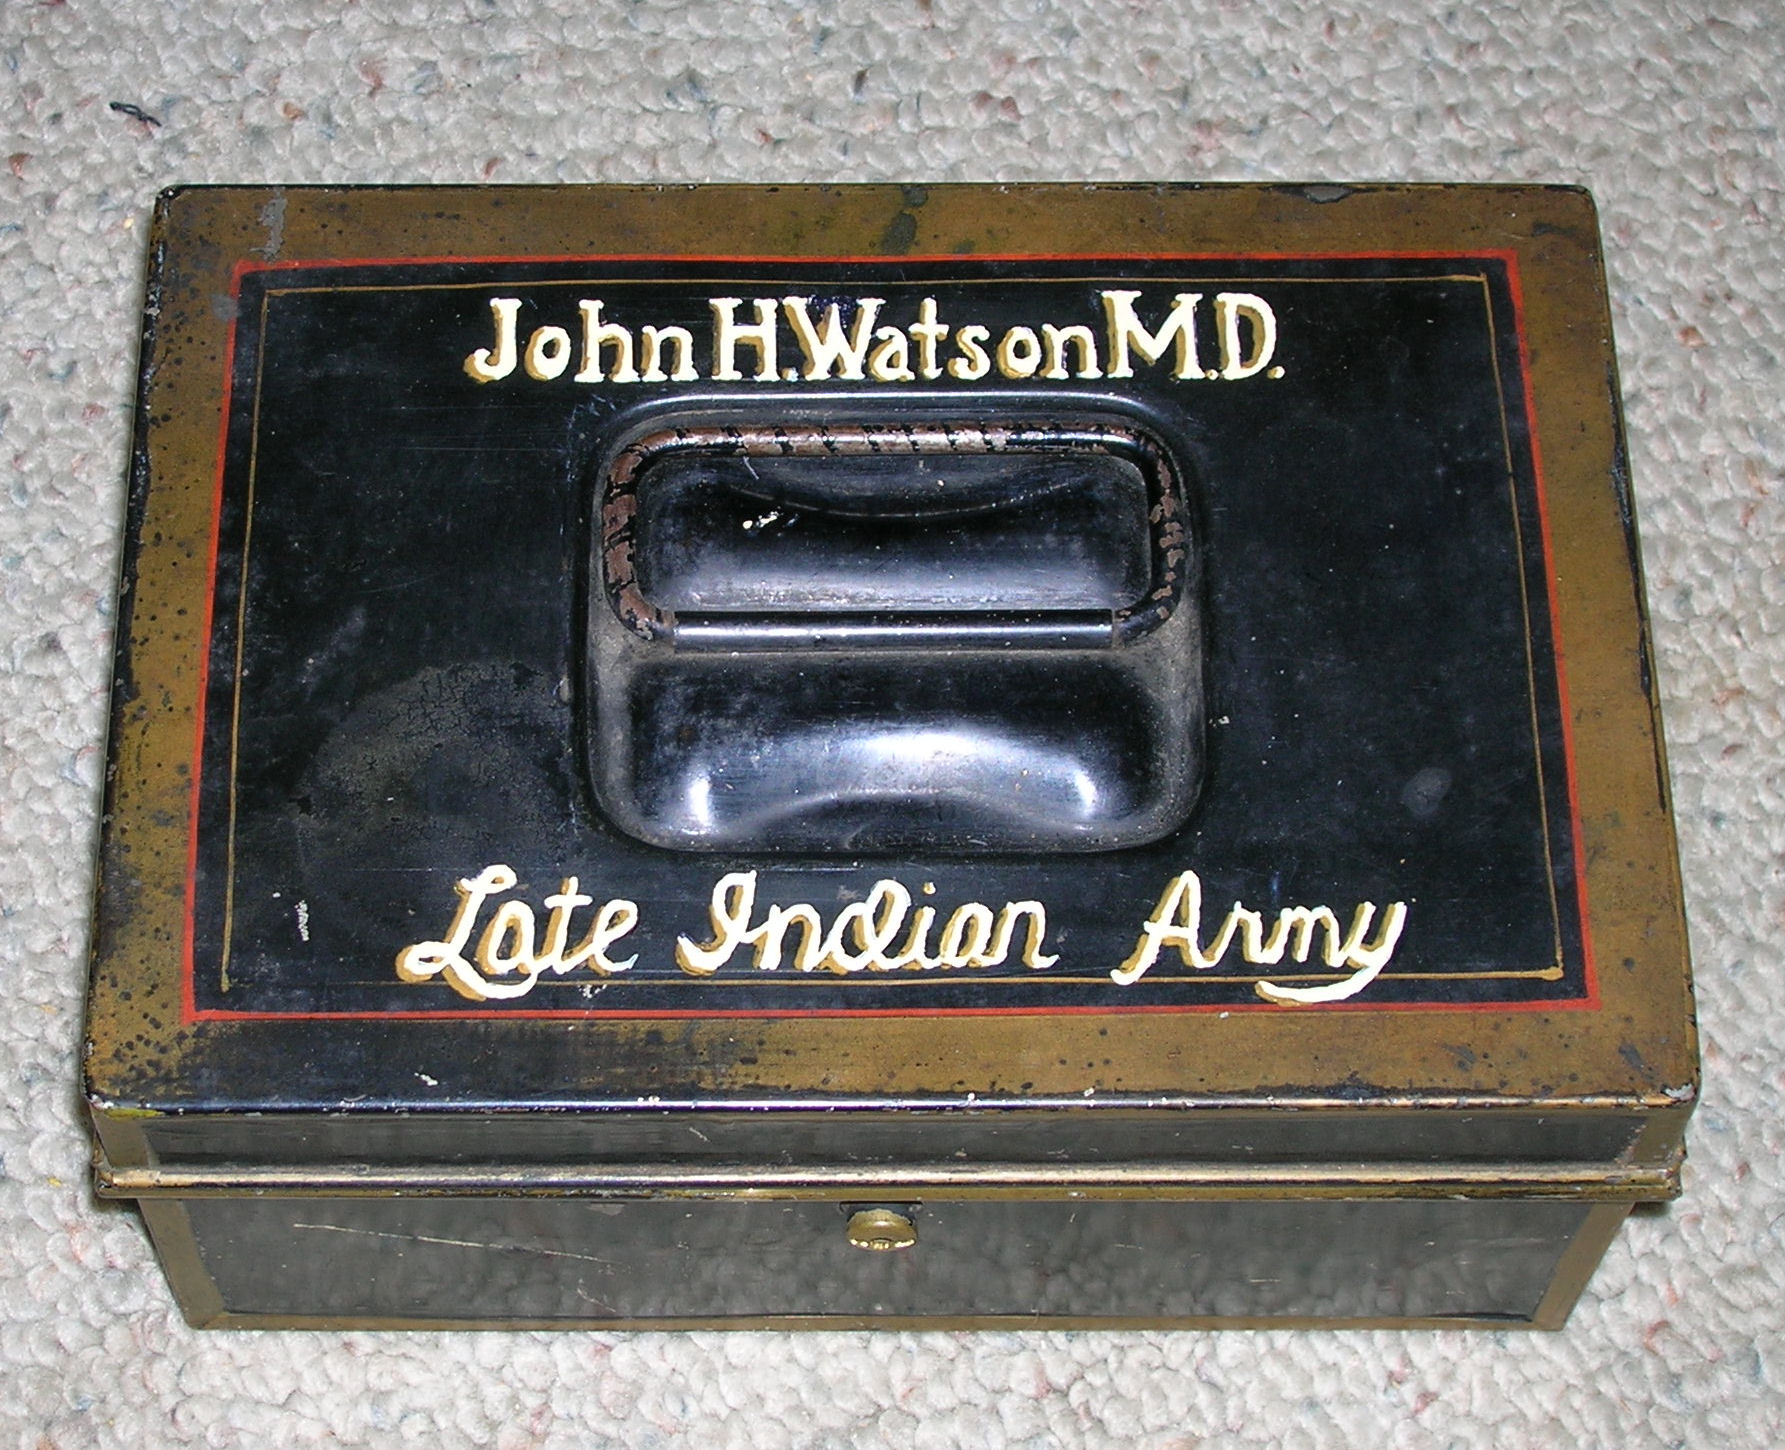 From Watson's Tin Box – The Cardboard Box